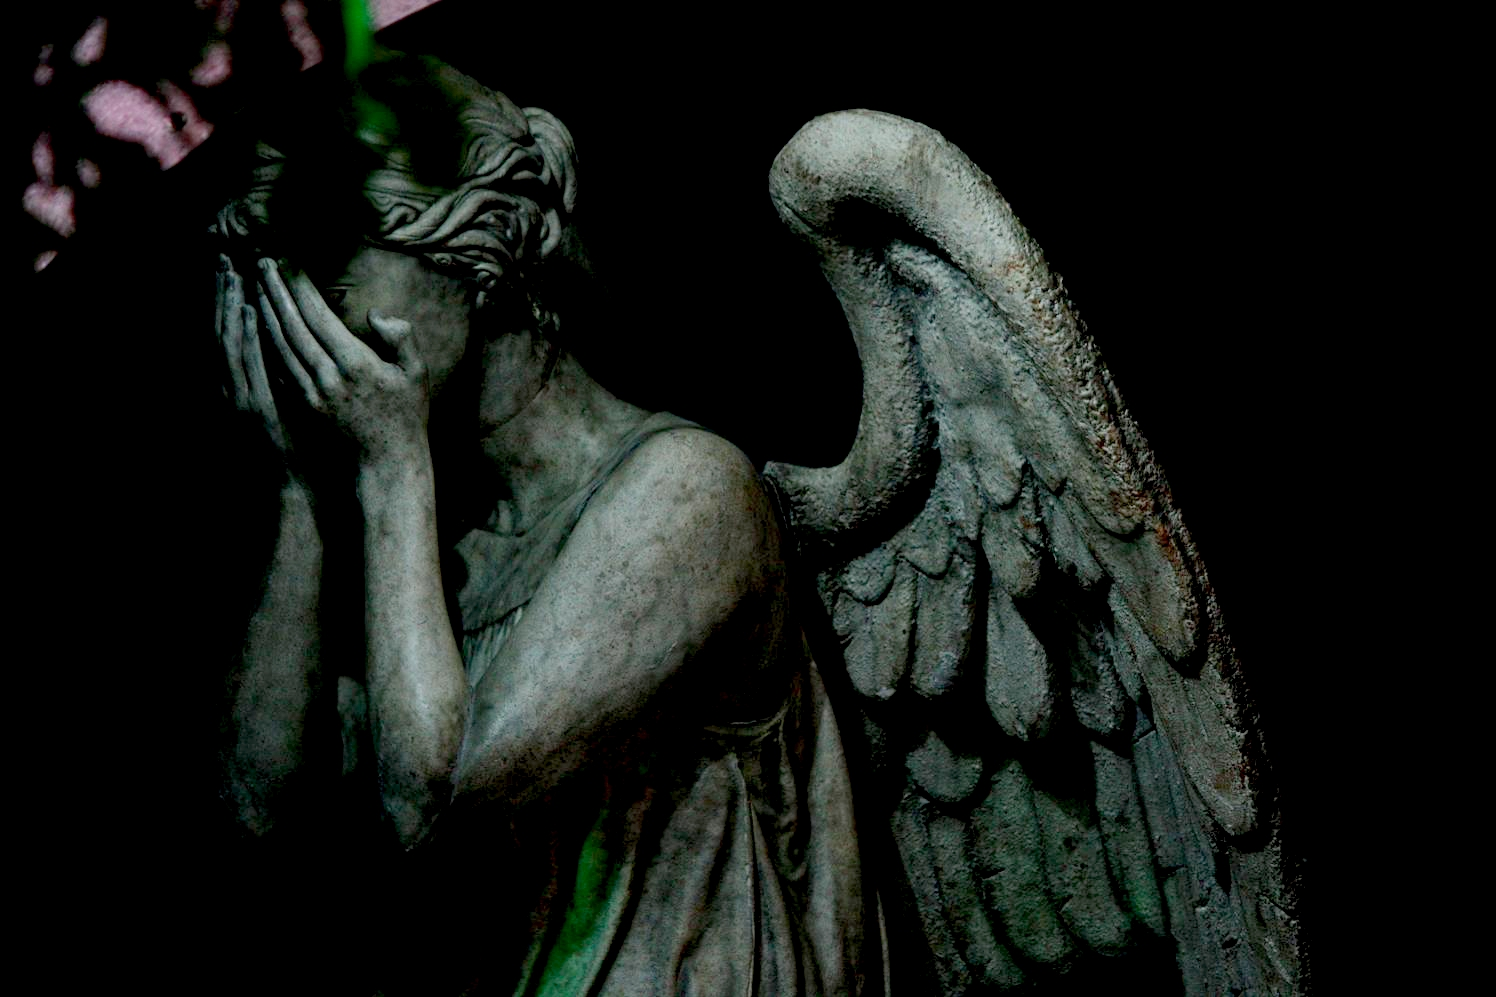 Weeping Angel Wallpaper Gif Twoj Doktor